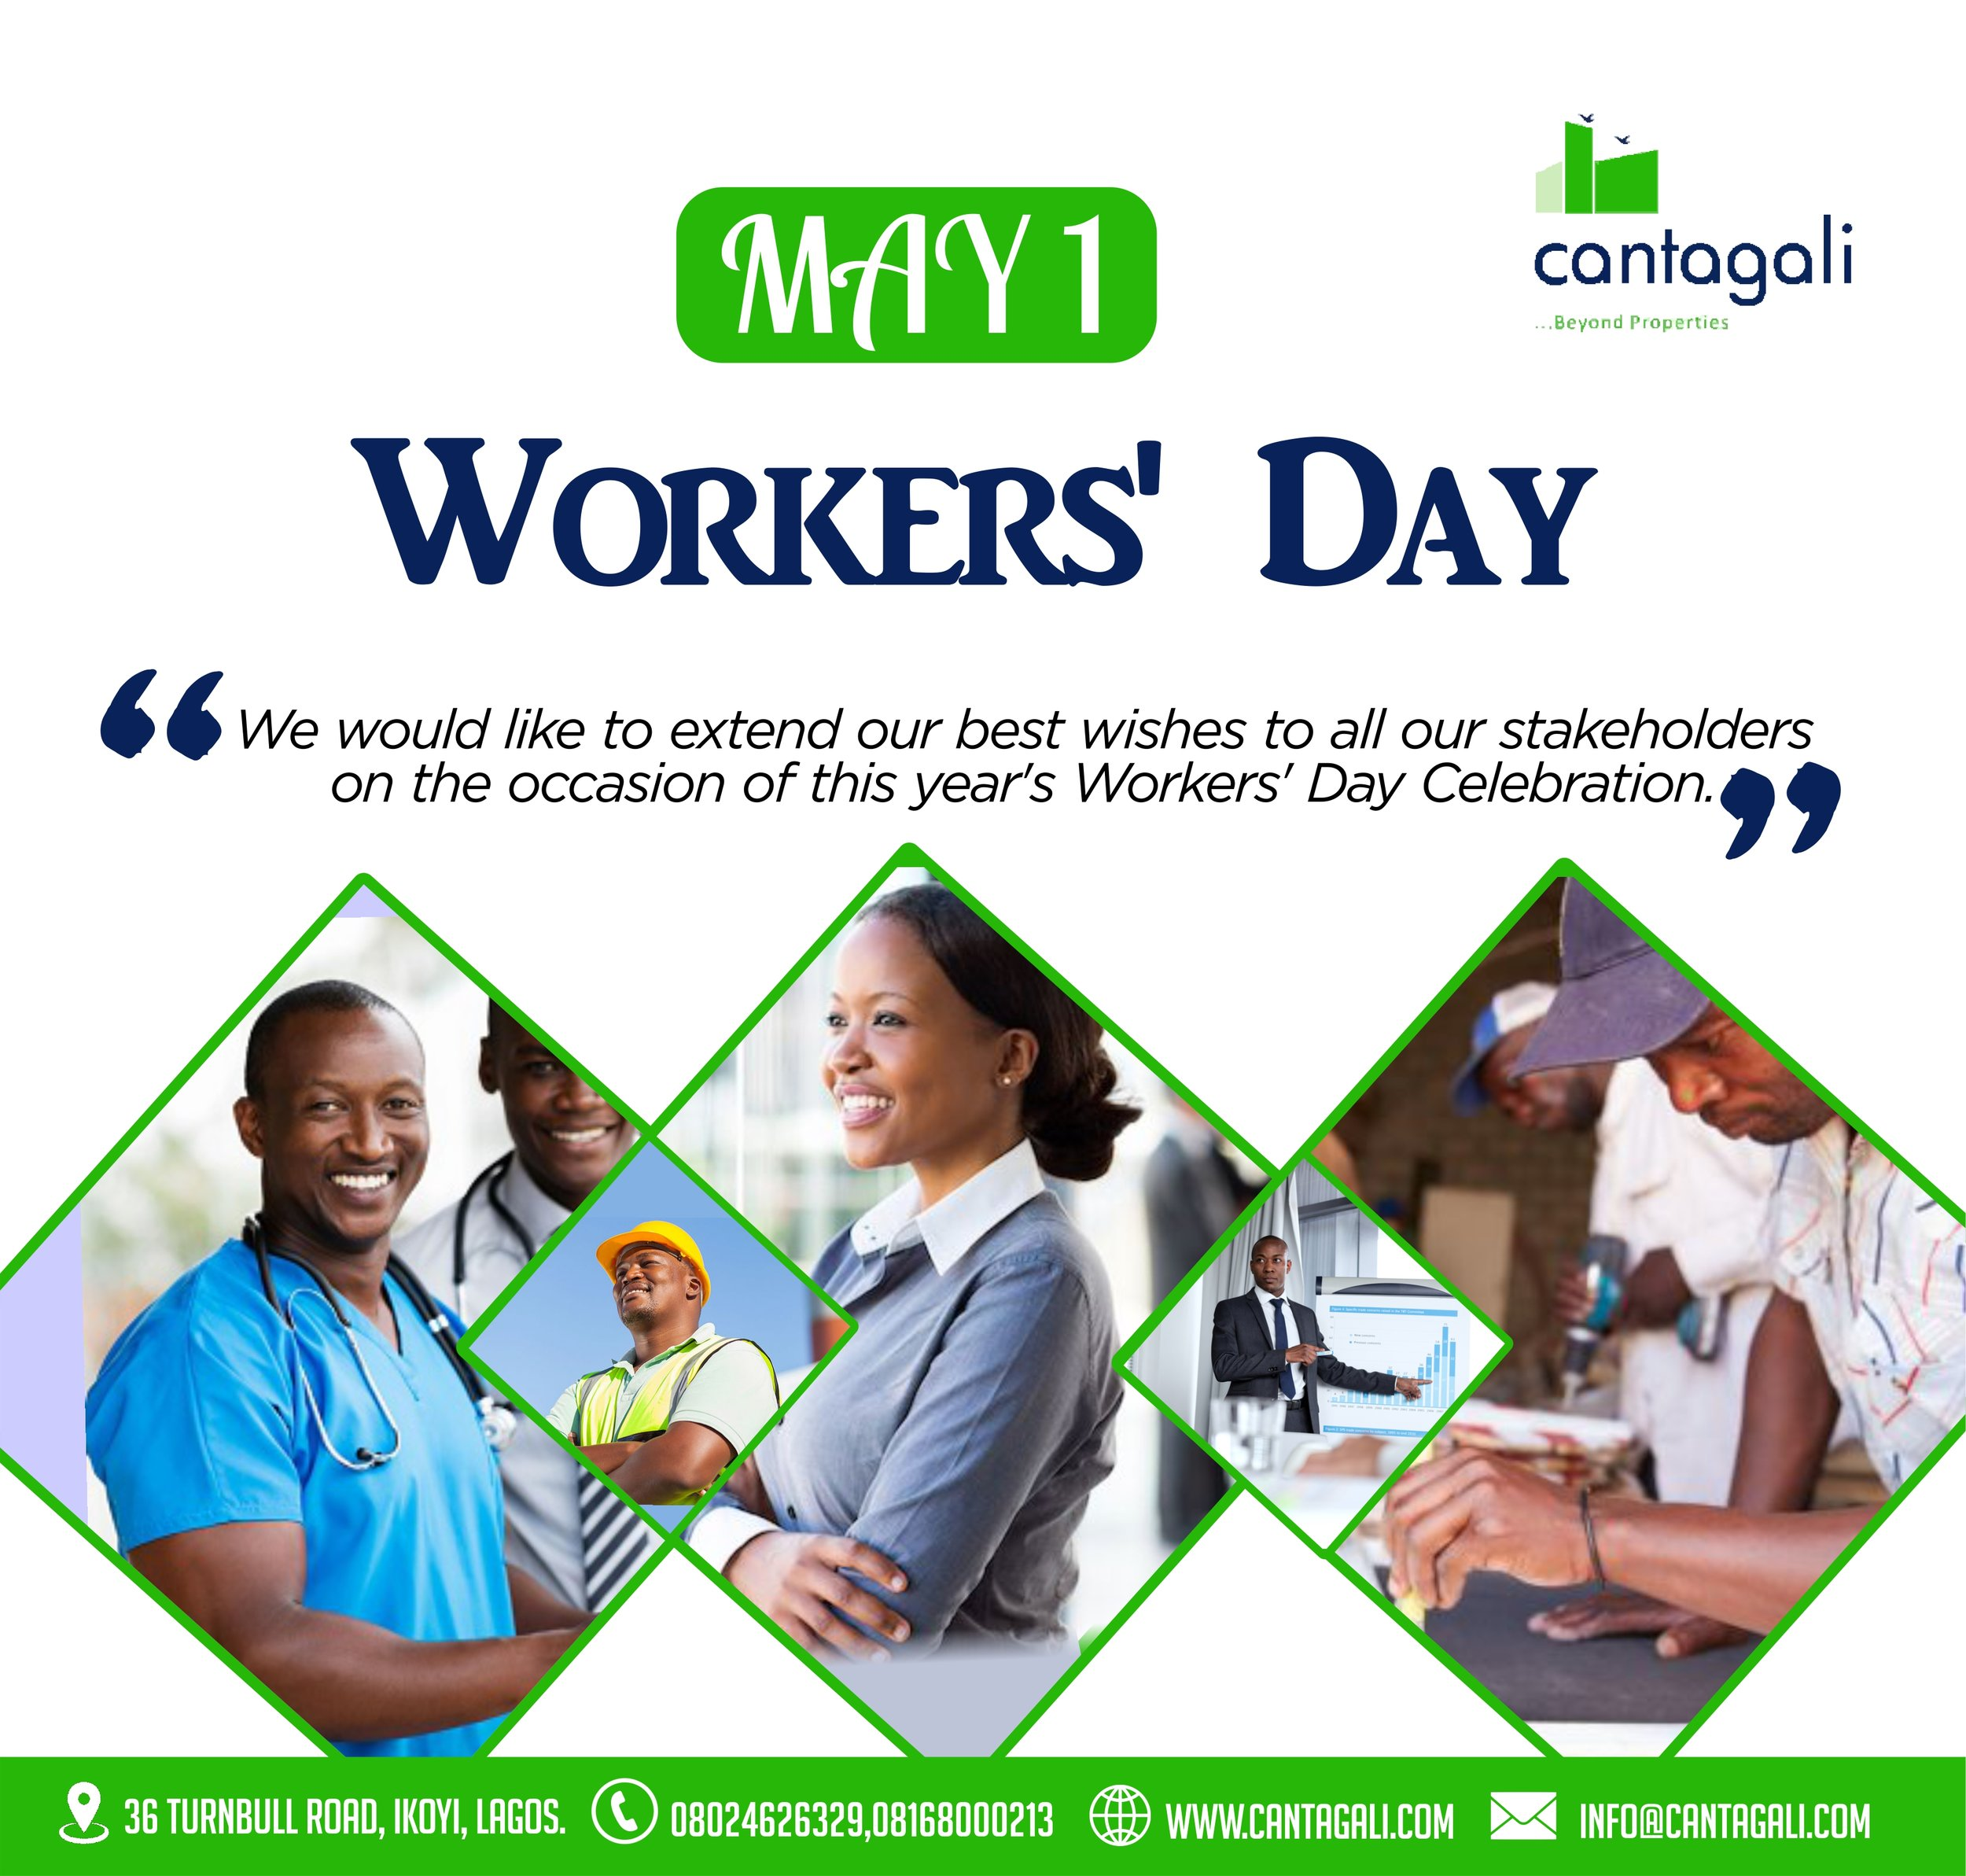 workers day 1.jpg